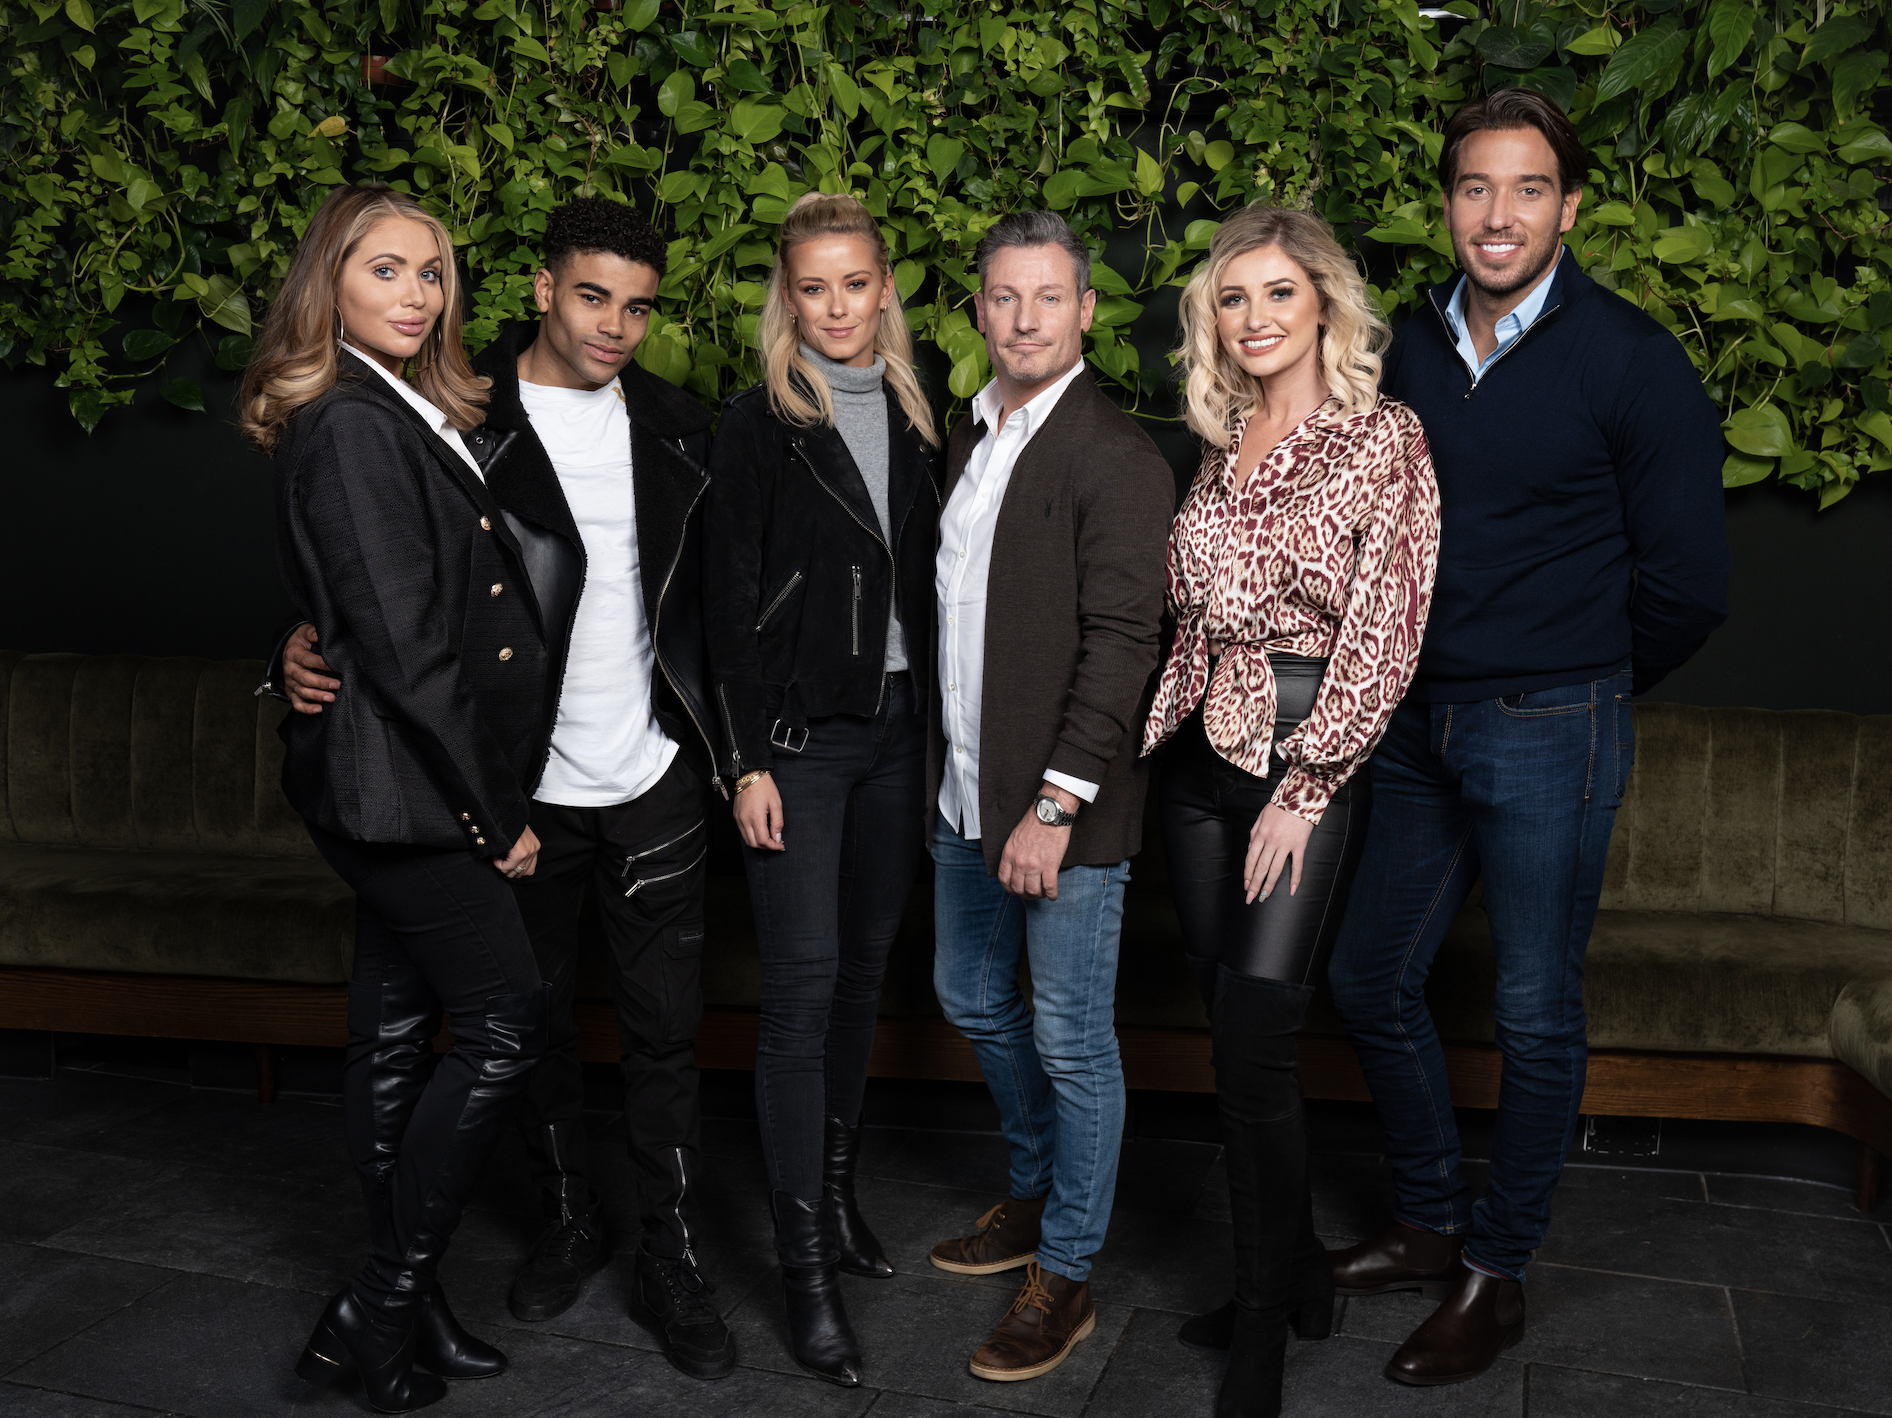 Is calum best still dating victoria from celebs go dating 2019